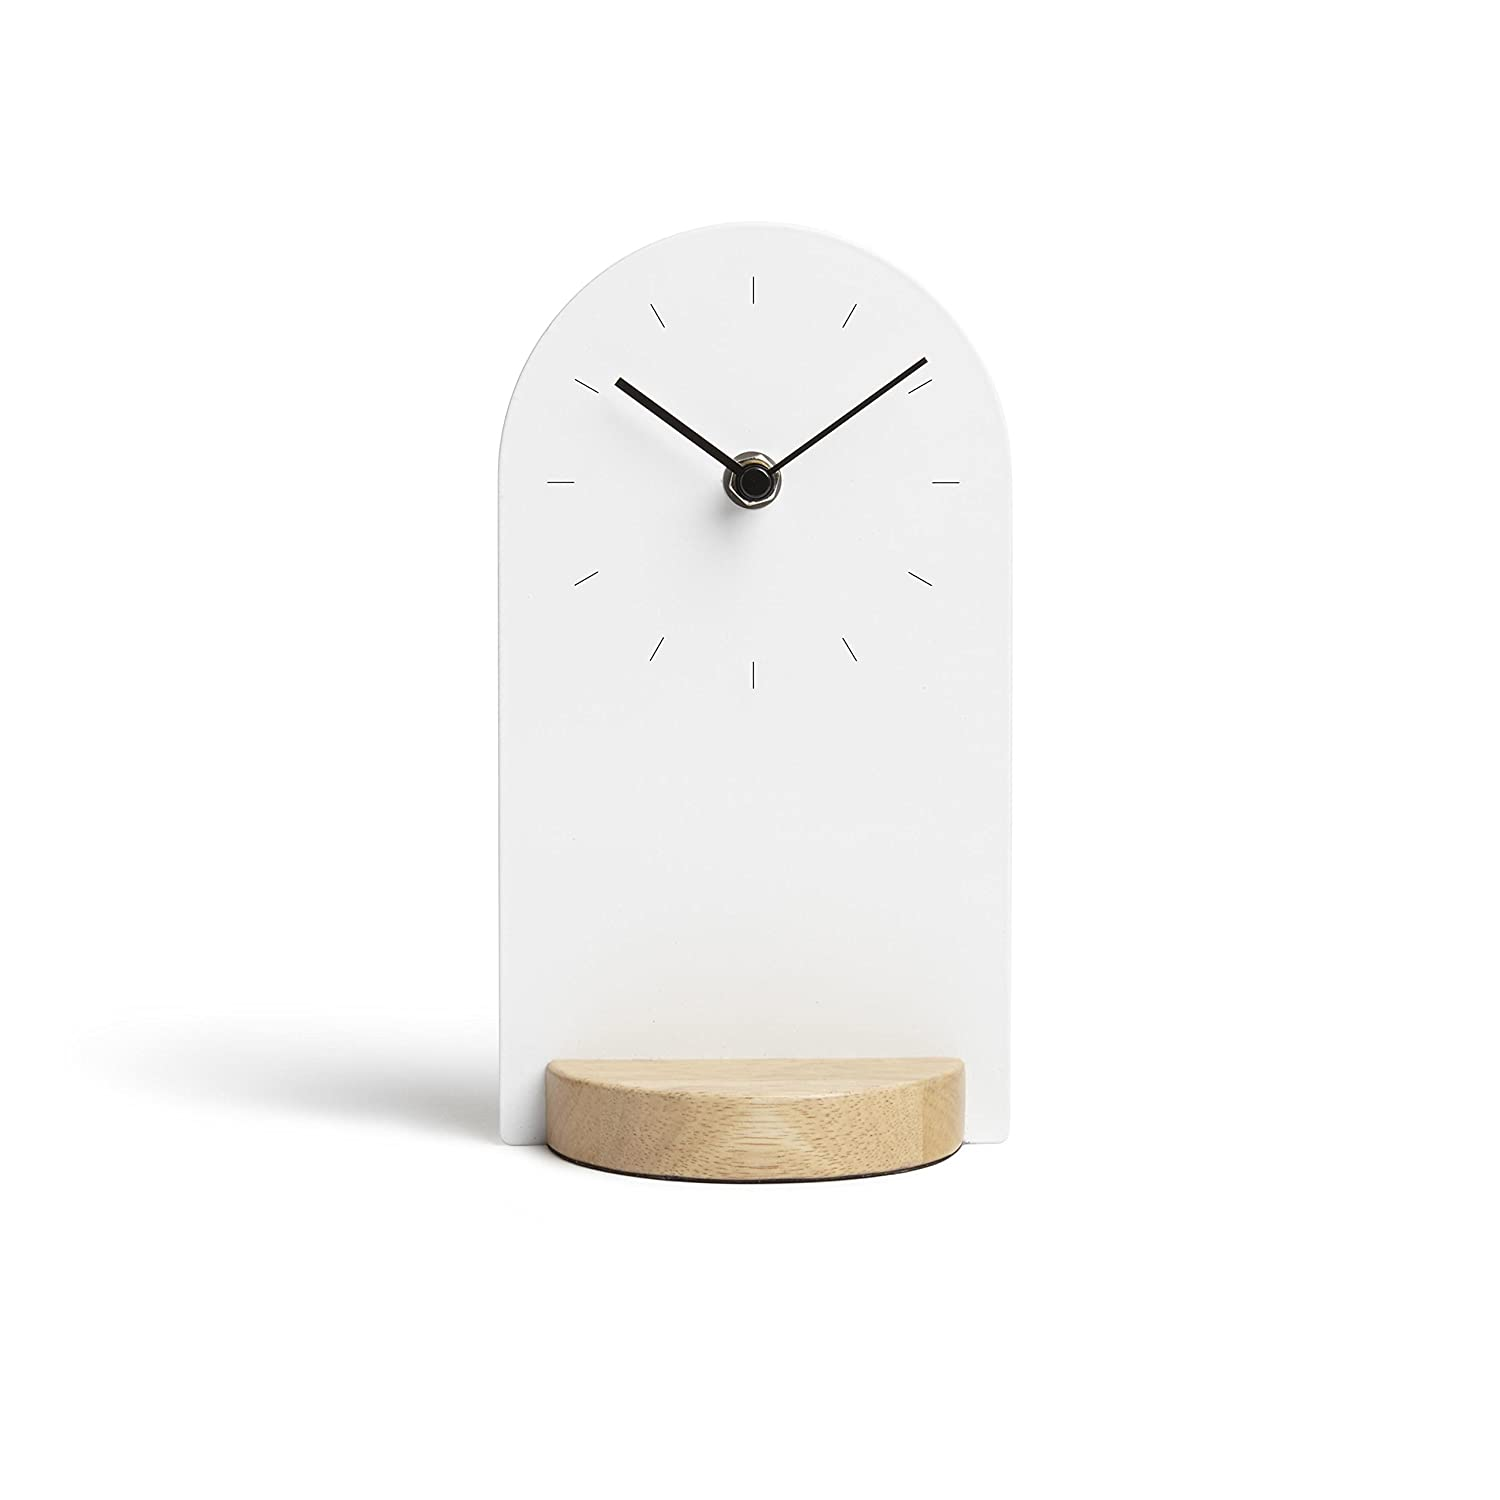 Buy Sometime clock by Umbra